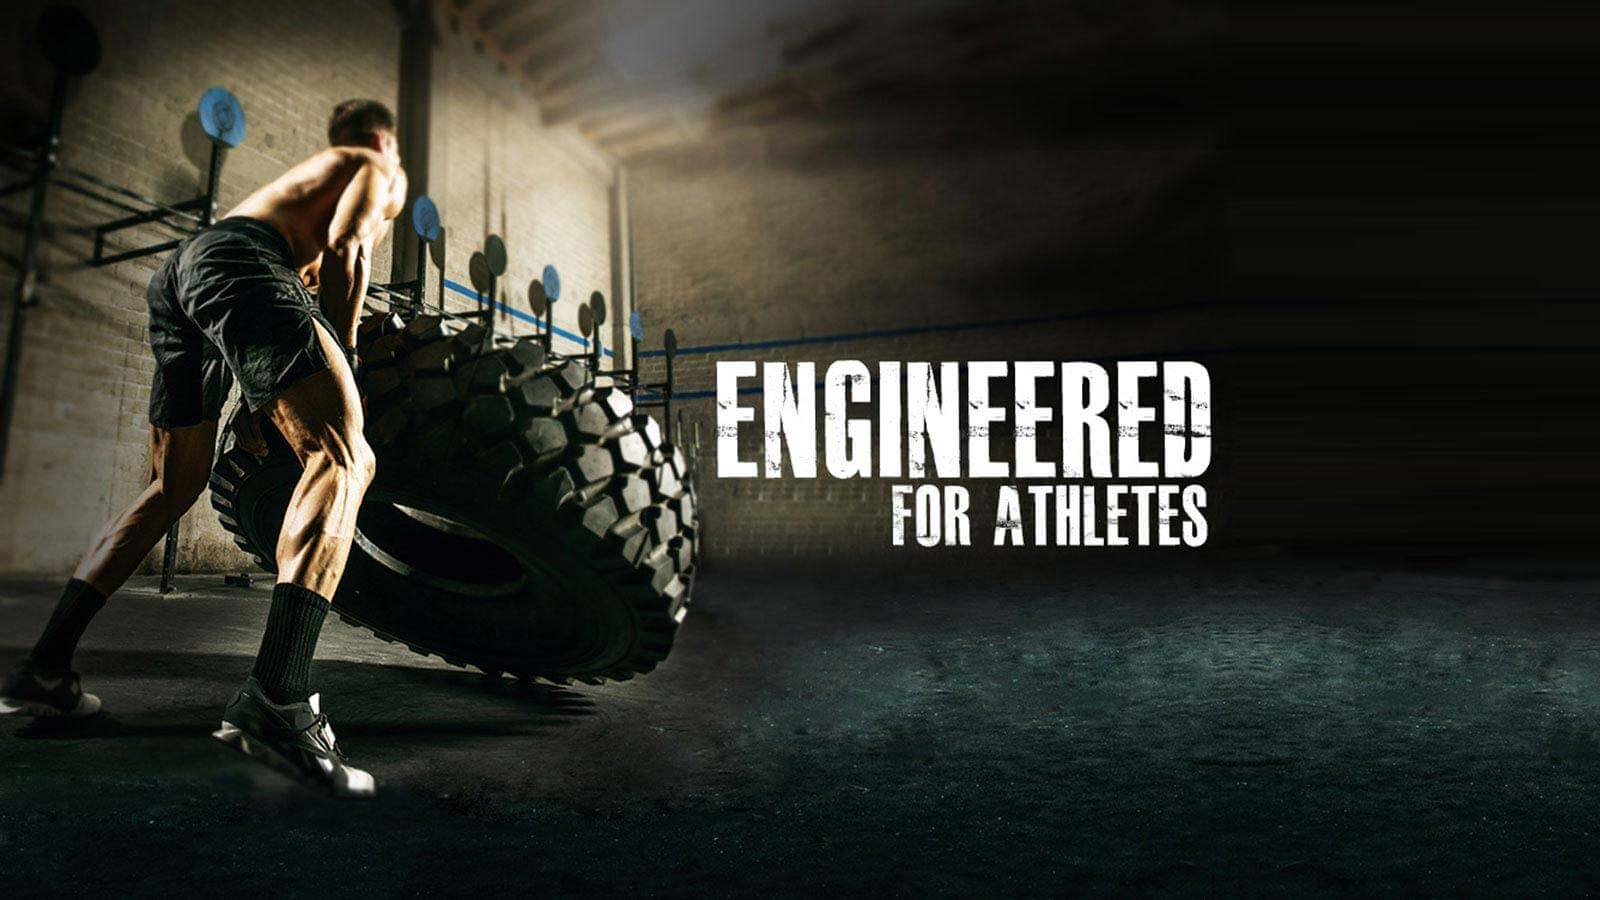 ENGINEERED FOR ATHELETES